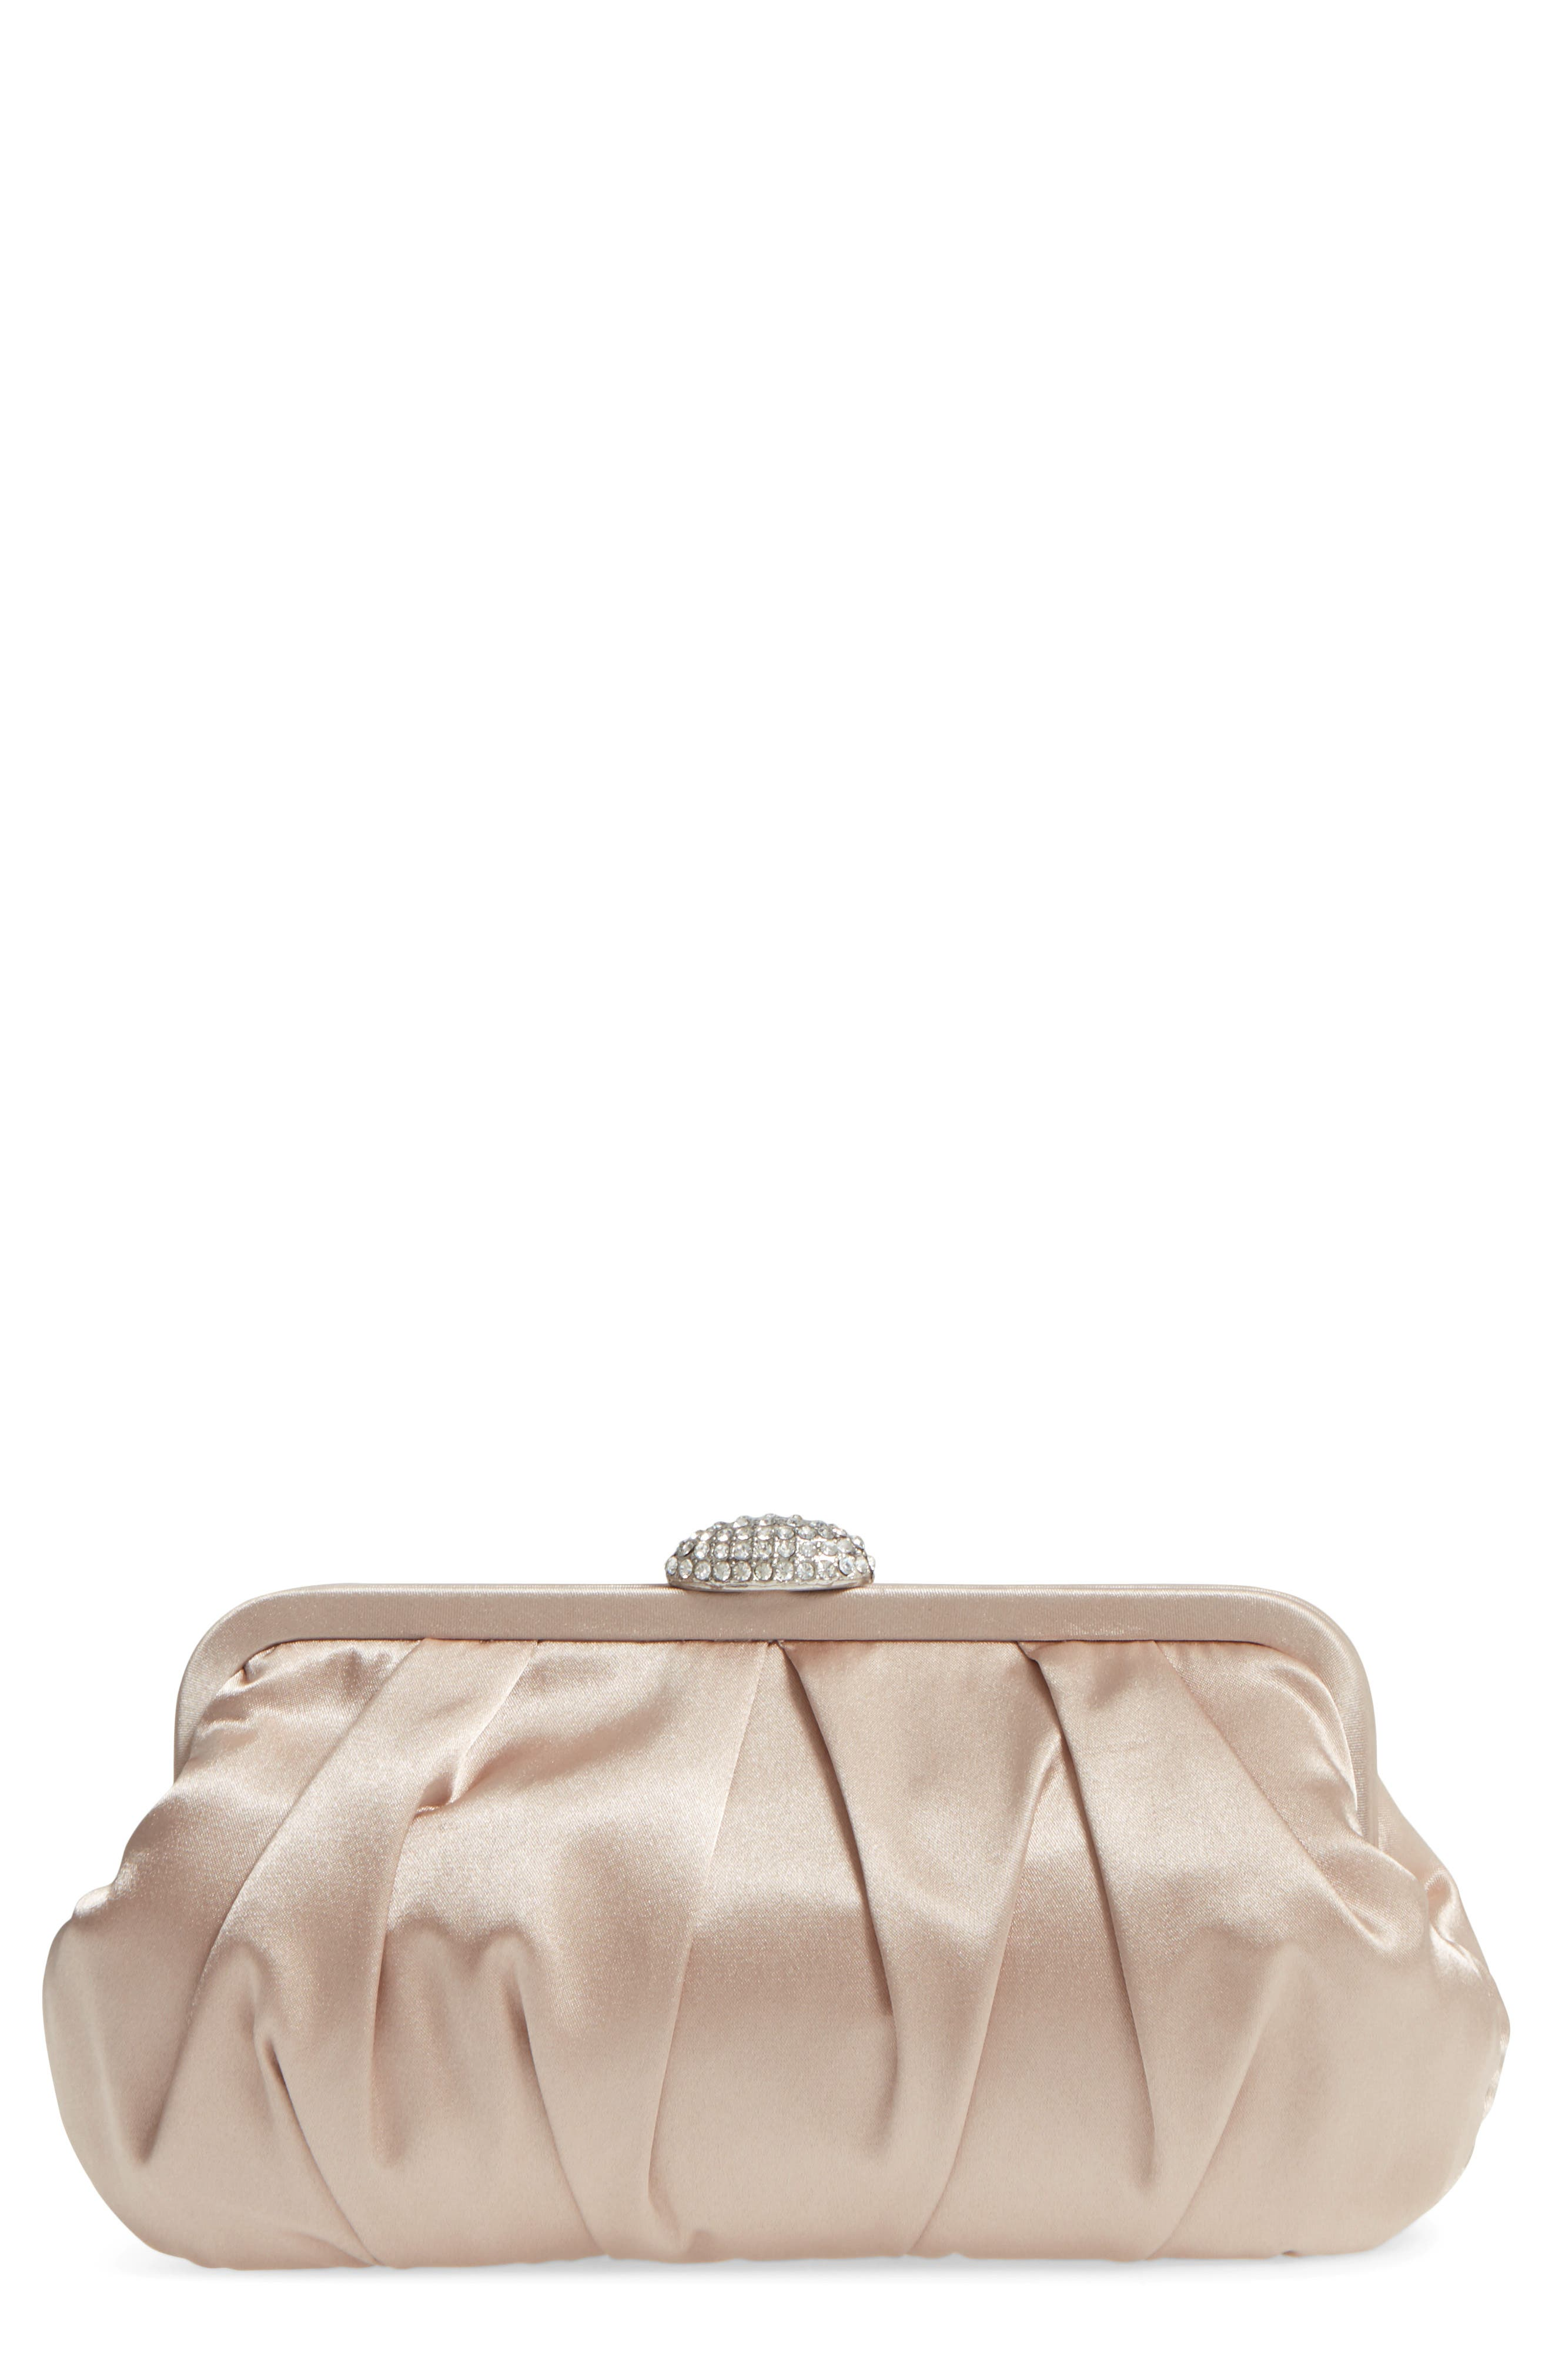 Concord Pleated Satin Frame Clutch,                             Main thumbnail 1, color,                             Champagne